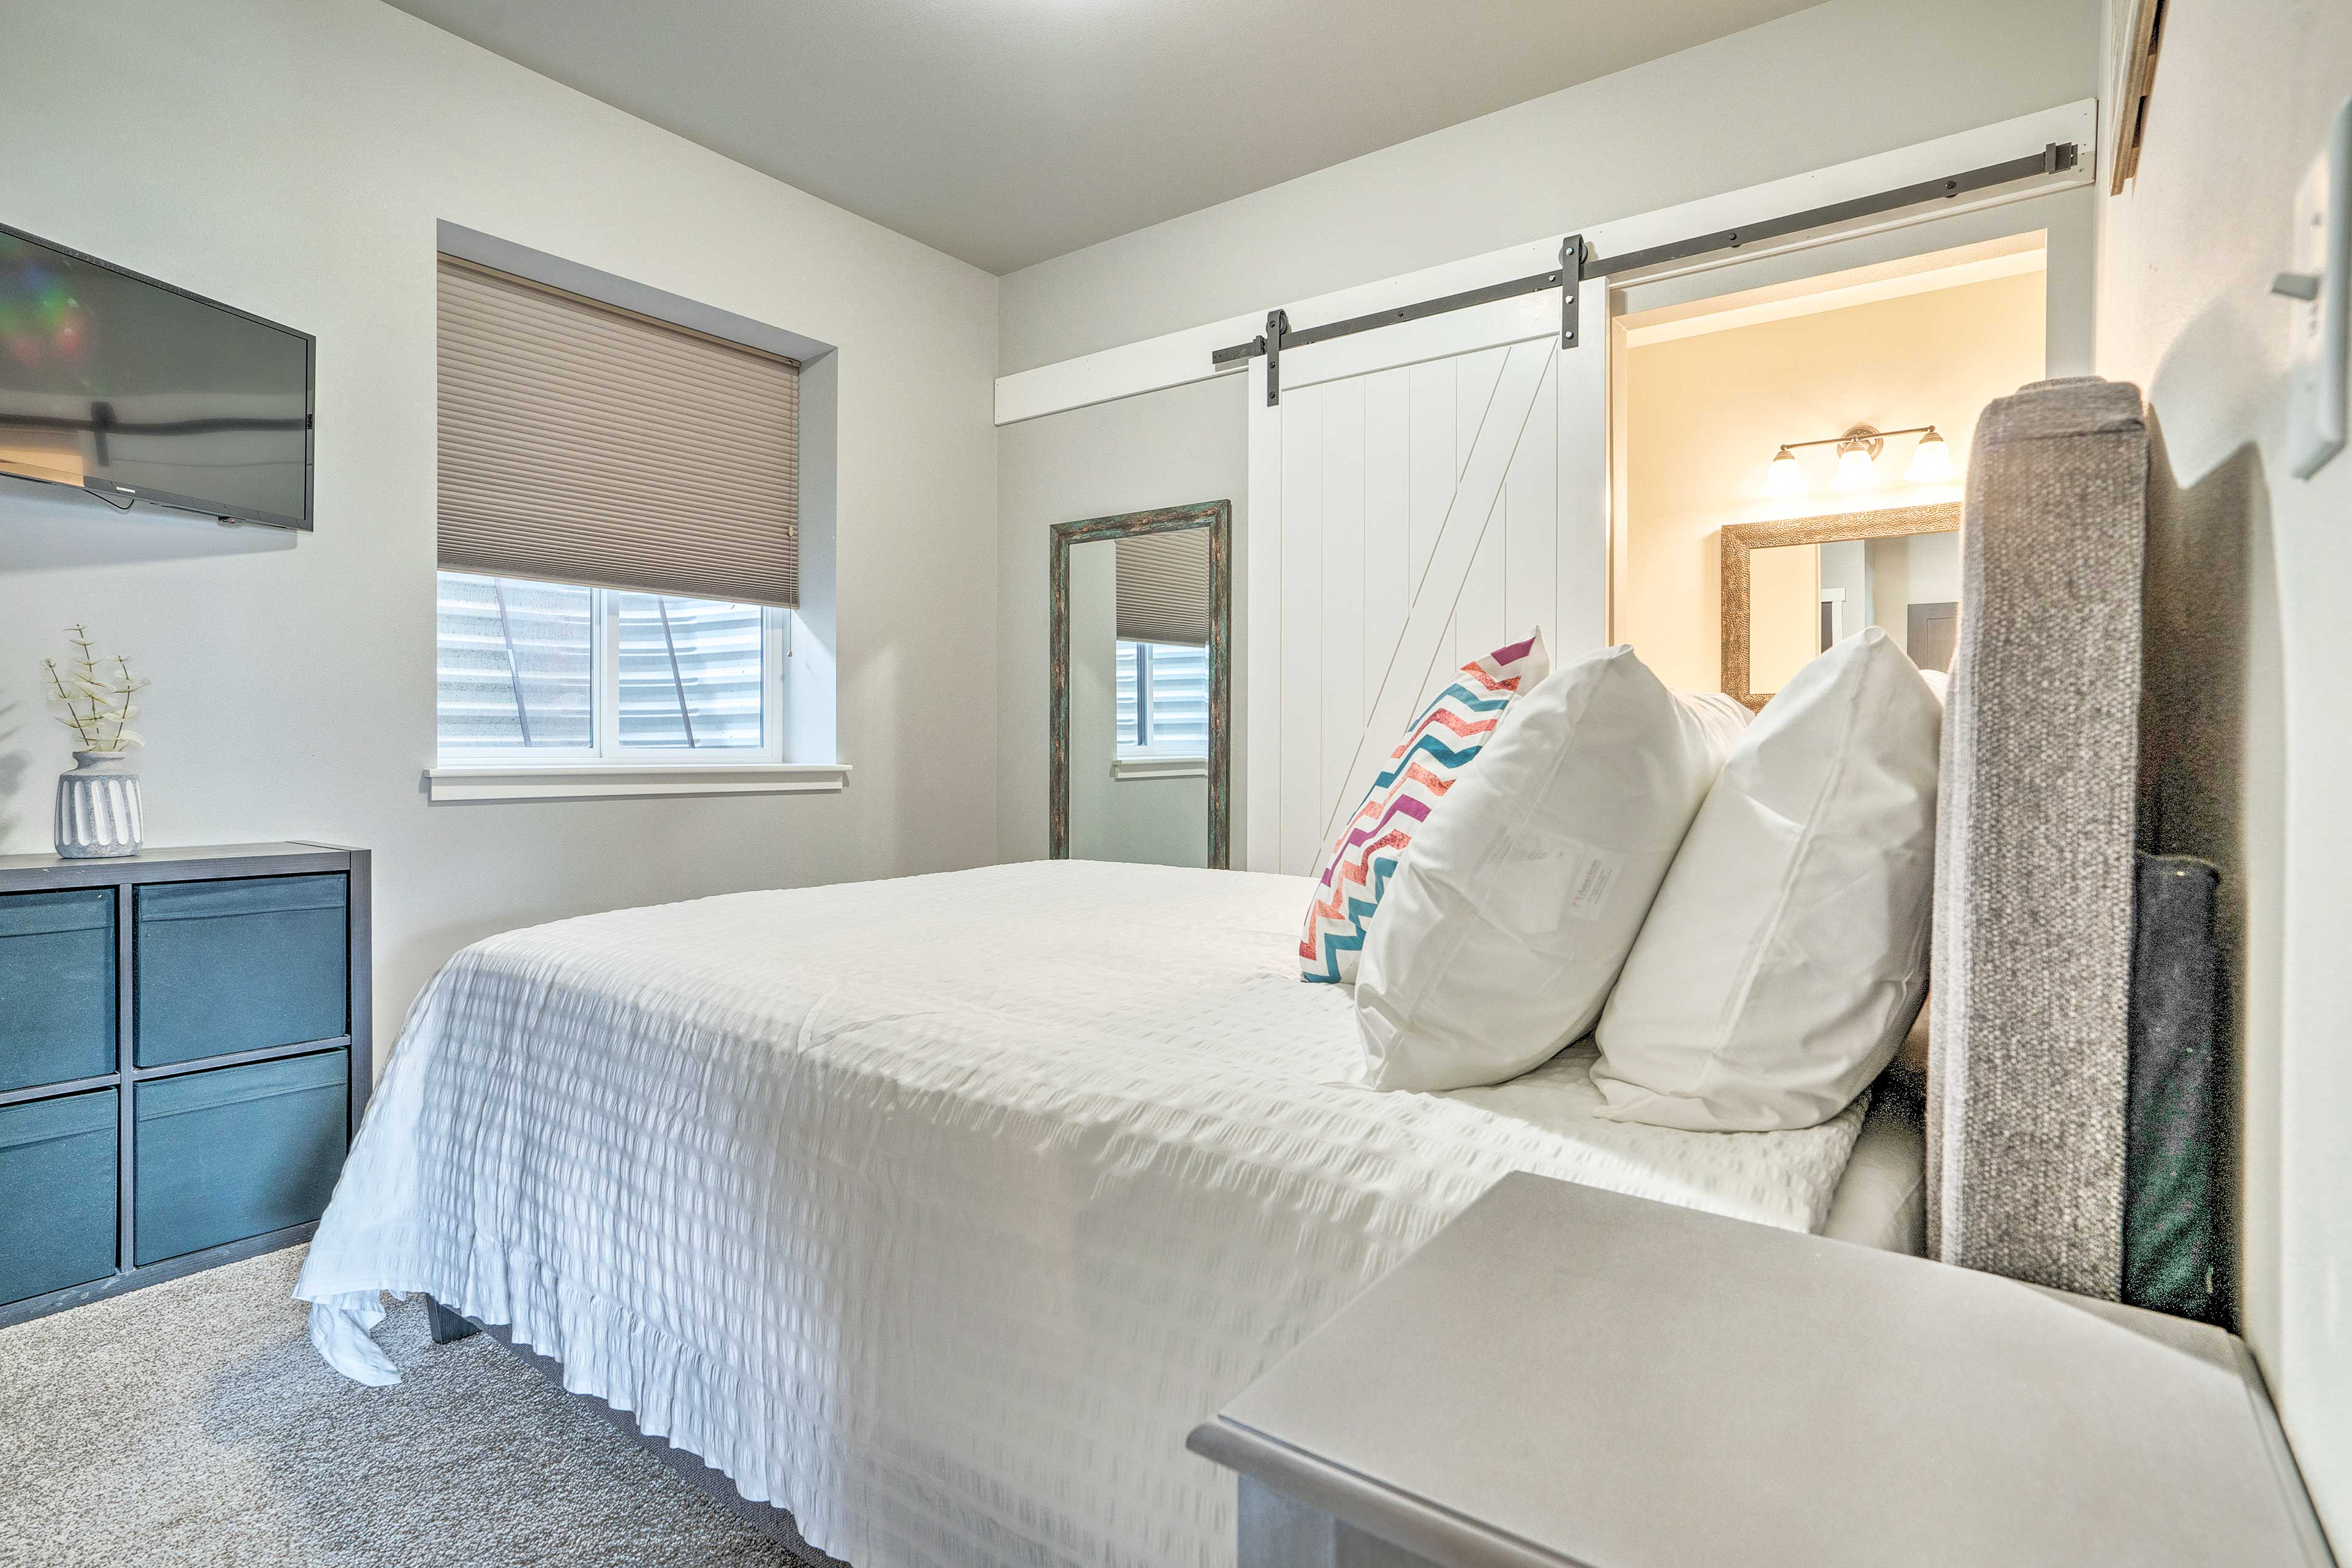 A queen bed and Smart TV highlight the master bedroom.